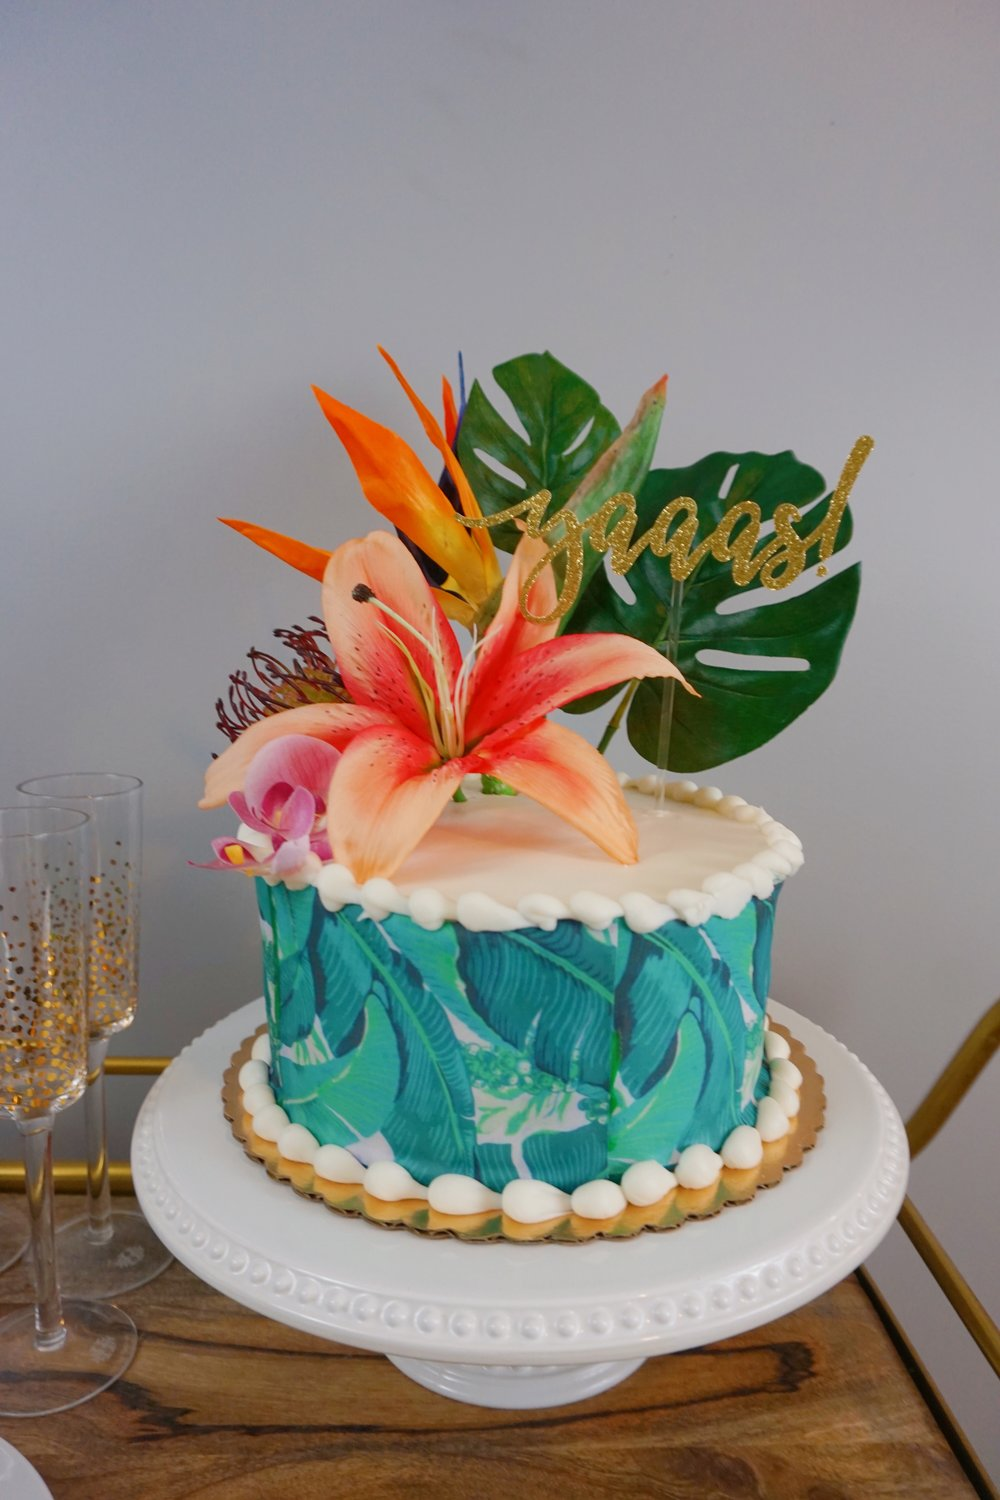 Jone Manns Wallpaper Cakes Ive Admired These Beauties Ever Since She First Published Them And Vowed That I Would Have One For Myself Turning 30